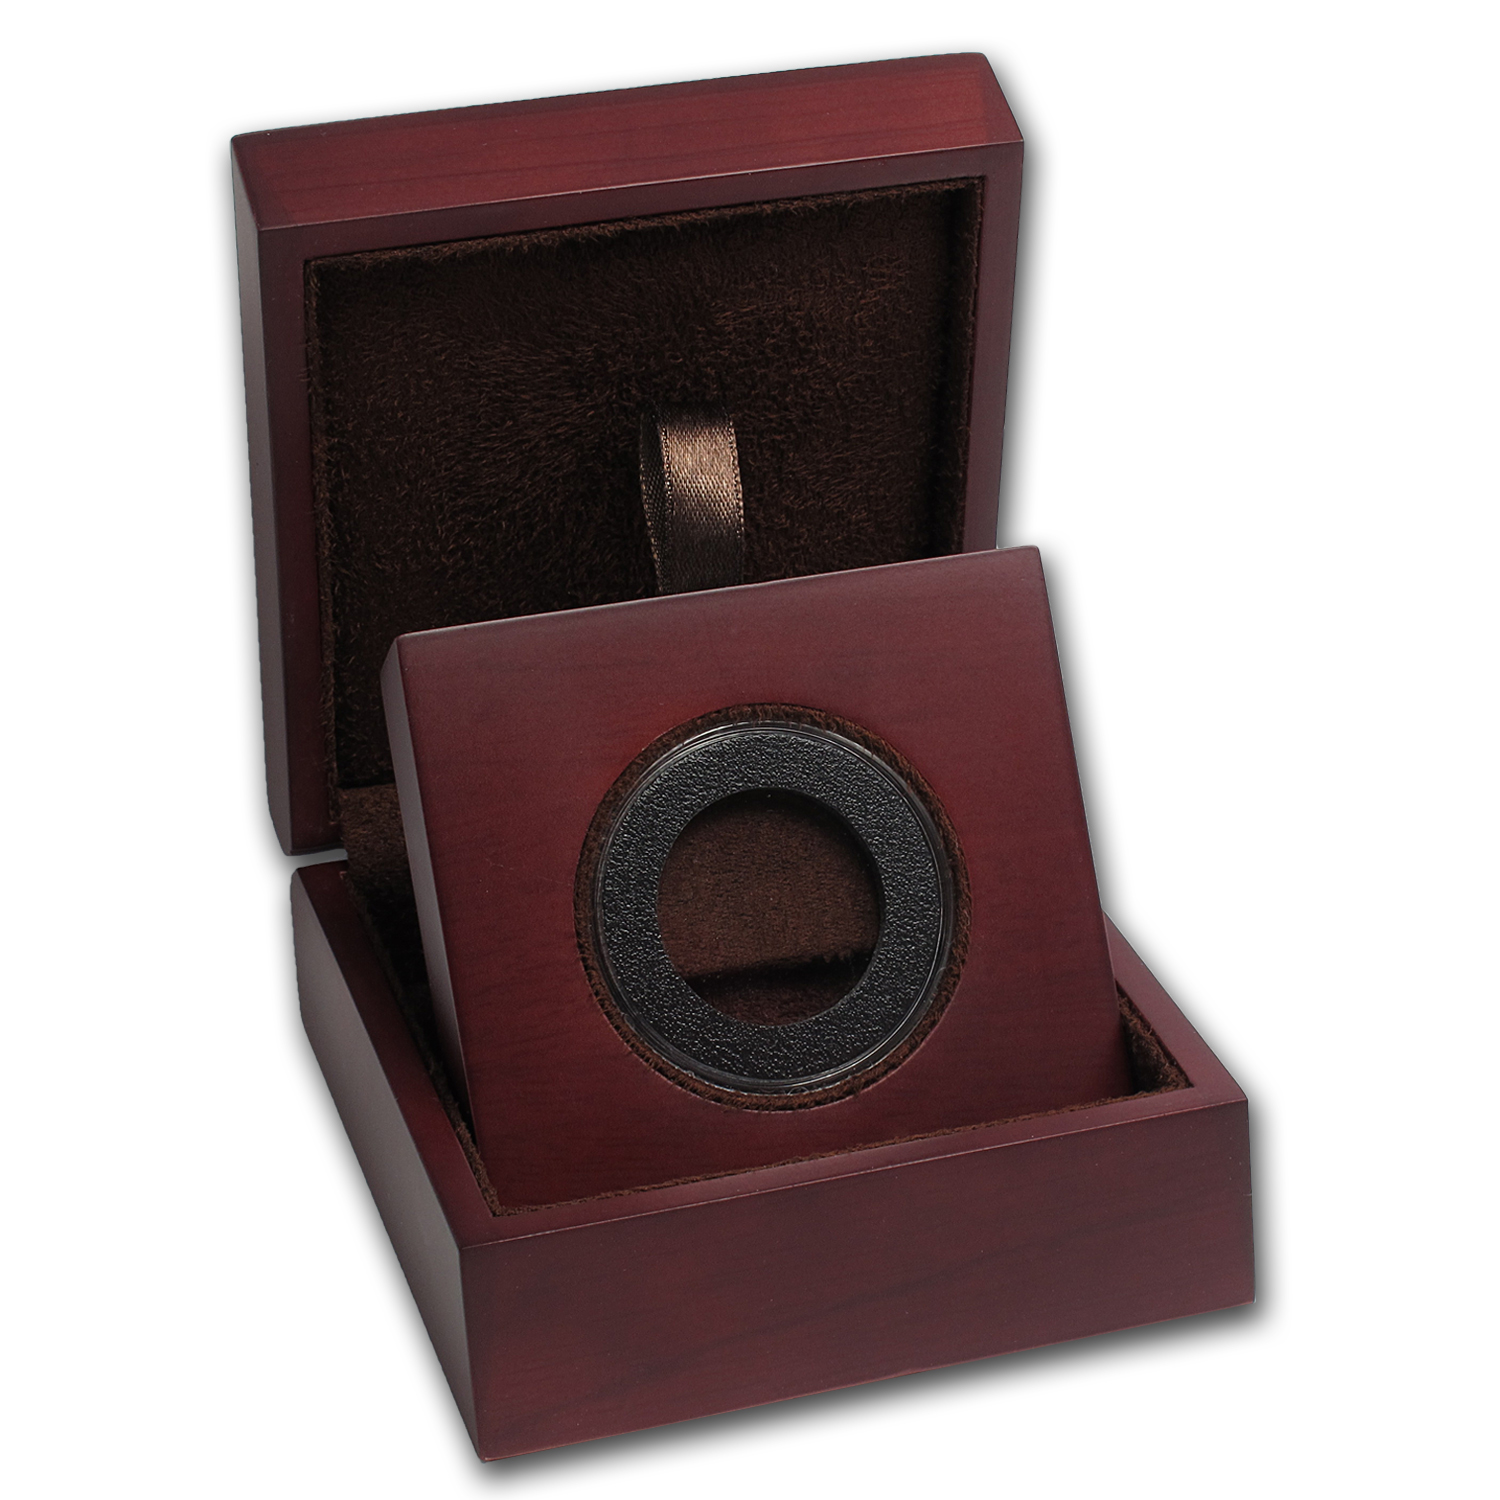 APMEX Wood Gift Box - Includes 28 mm Air-Tite Holder with Gasket